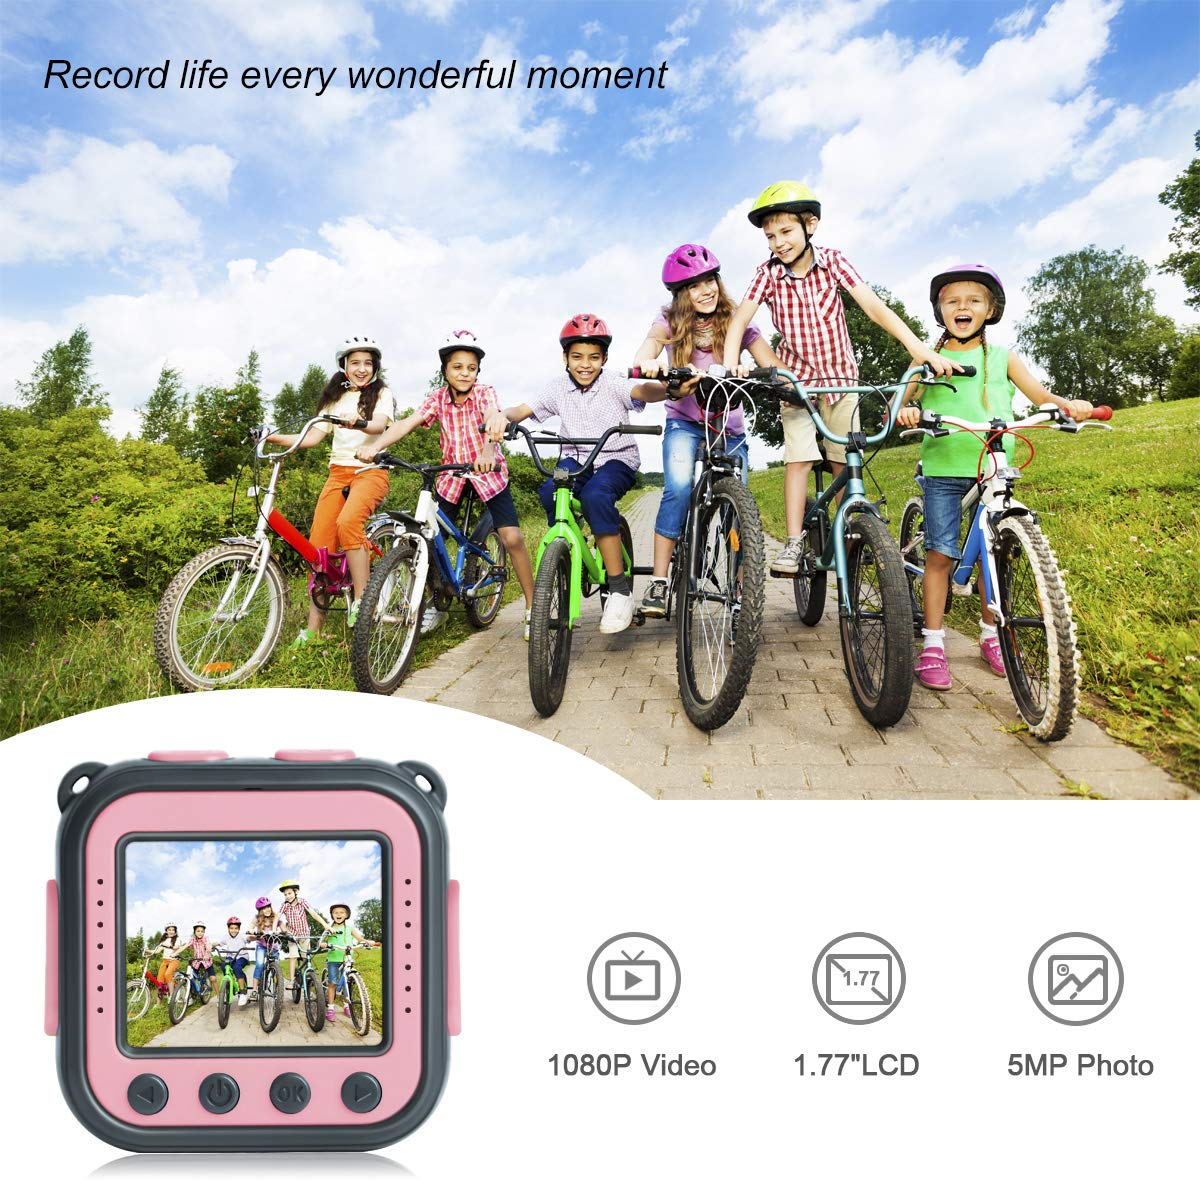 DROGRACE Children Kids Camera Waterproof Digital Video HD Action Camera 1080P Sports Camera Camcorder DV for Girls Birthday Holiday Gift Learn Camera Toy 1.77\'\' LCD Screen (Pink)